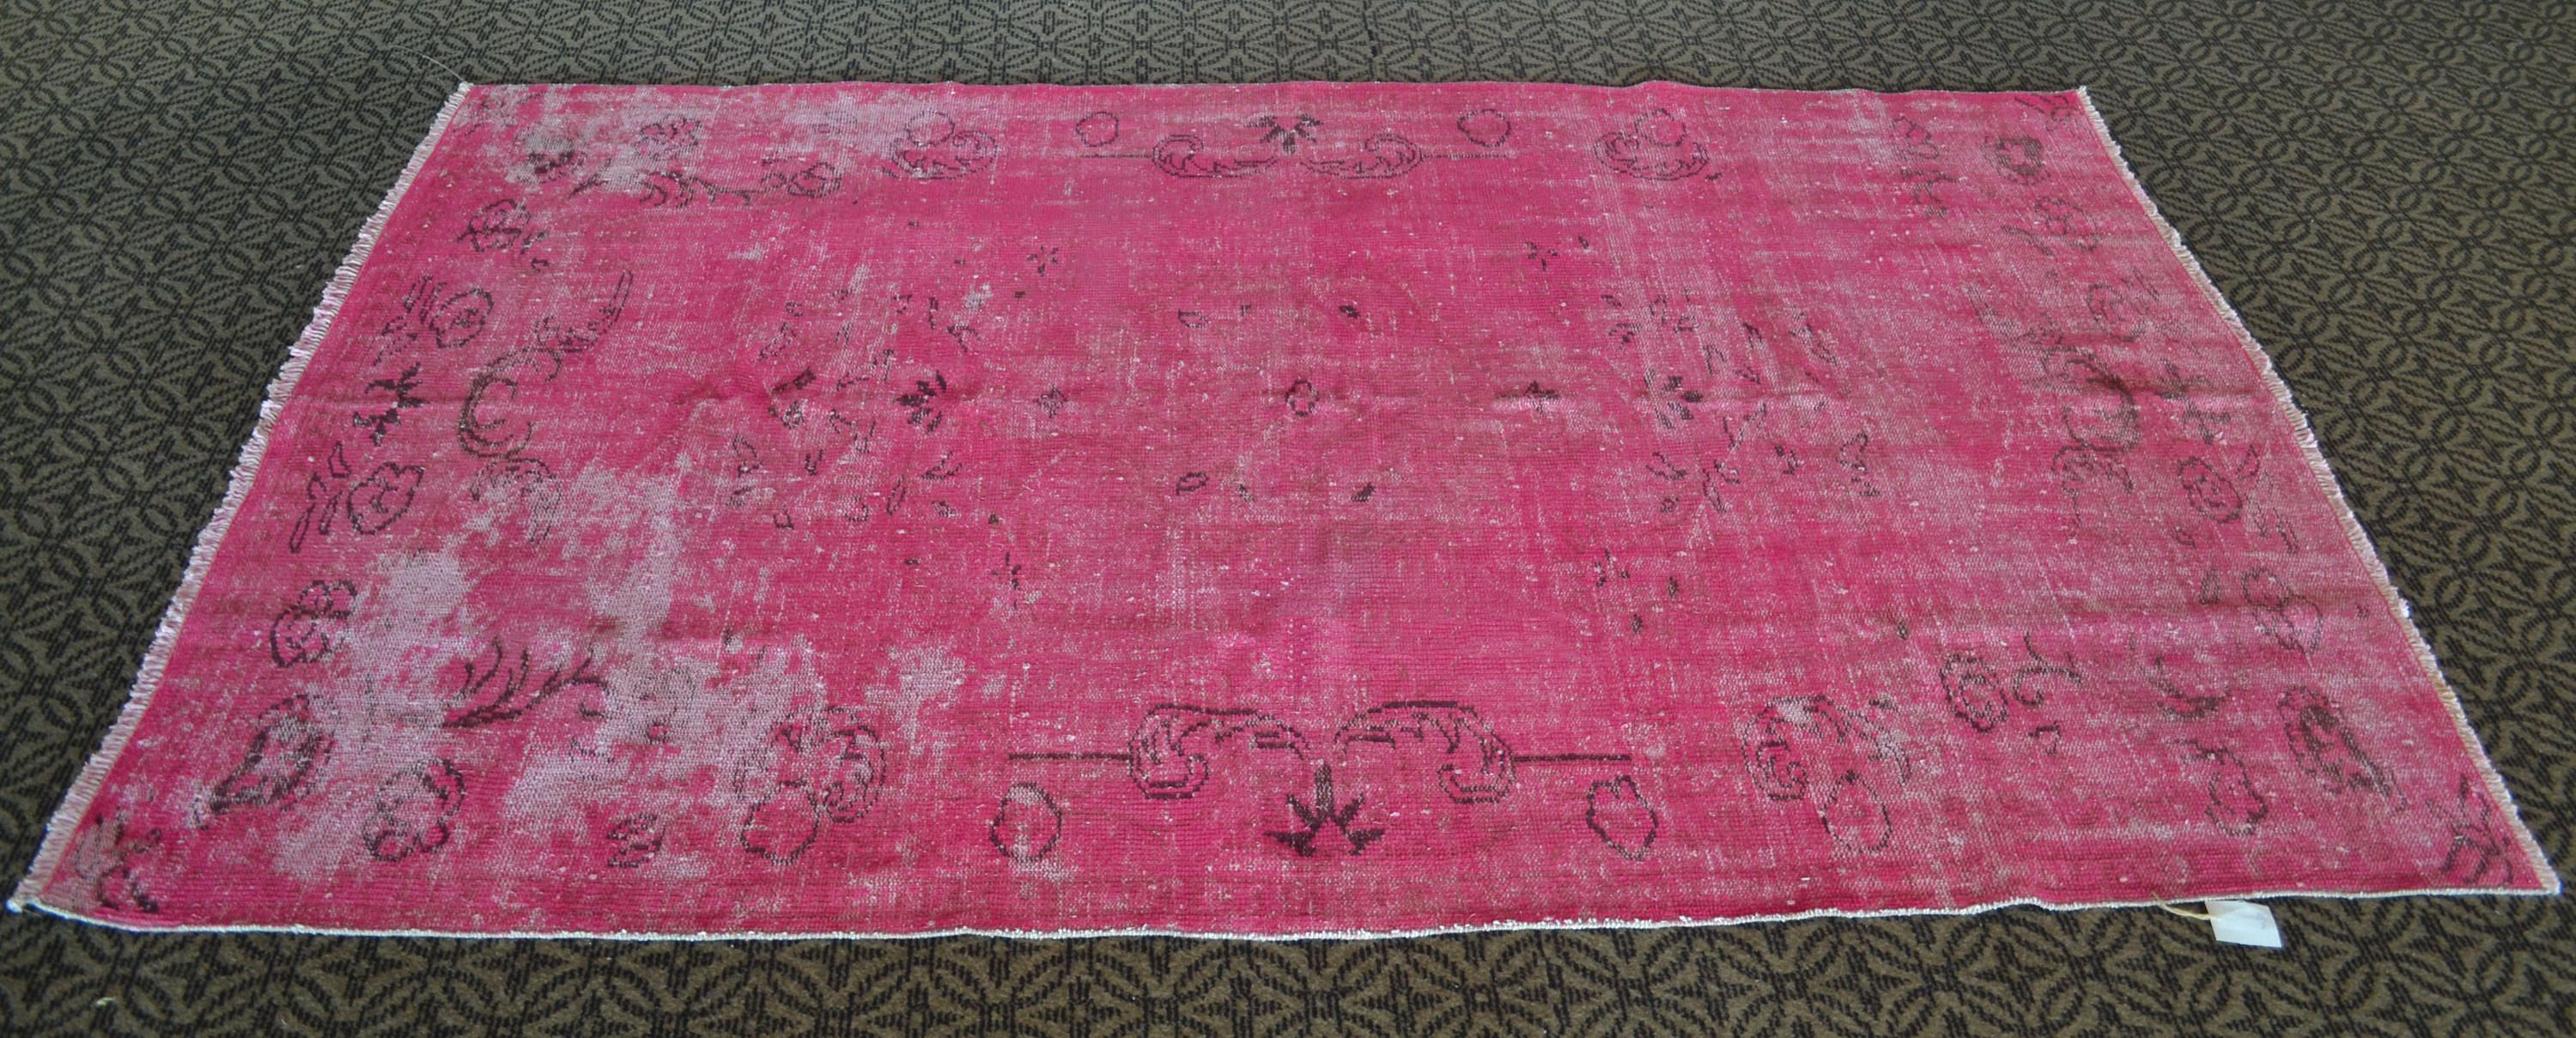 Pink Vintage Turkish Rug Handmade Overdyed Carpet Pink Oushak